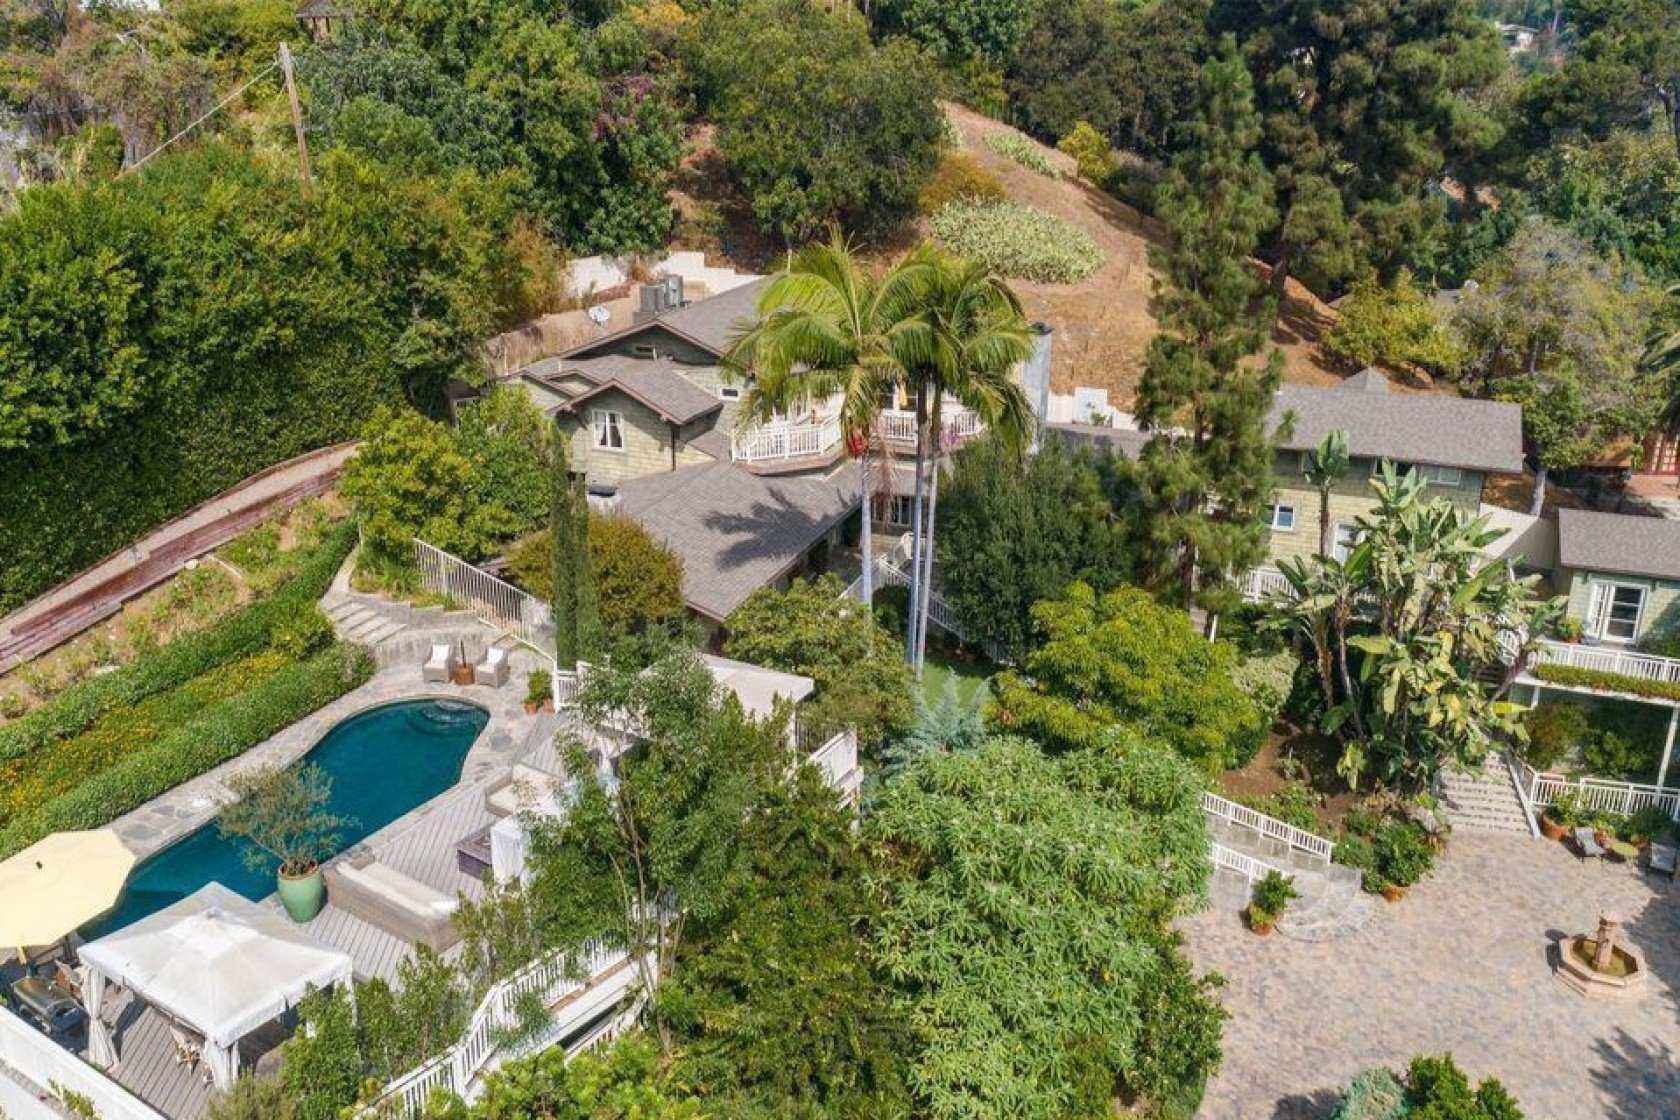 Craig Ferguson's house that is located in Hollywood Hills